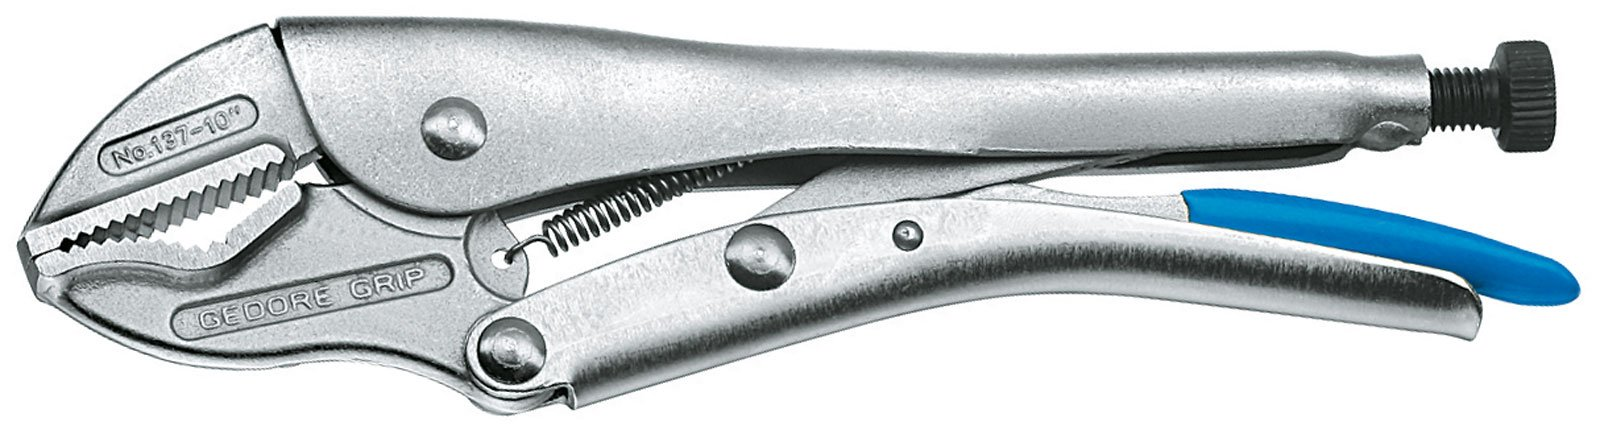 GEDORE 137 10 Grip Wrench 10'' by Gedore